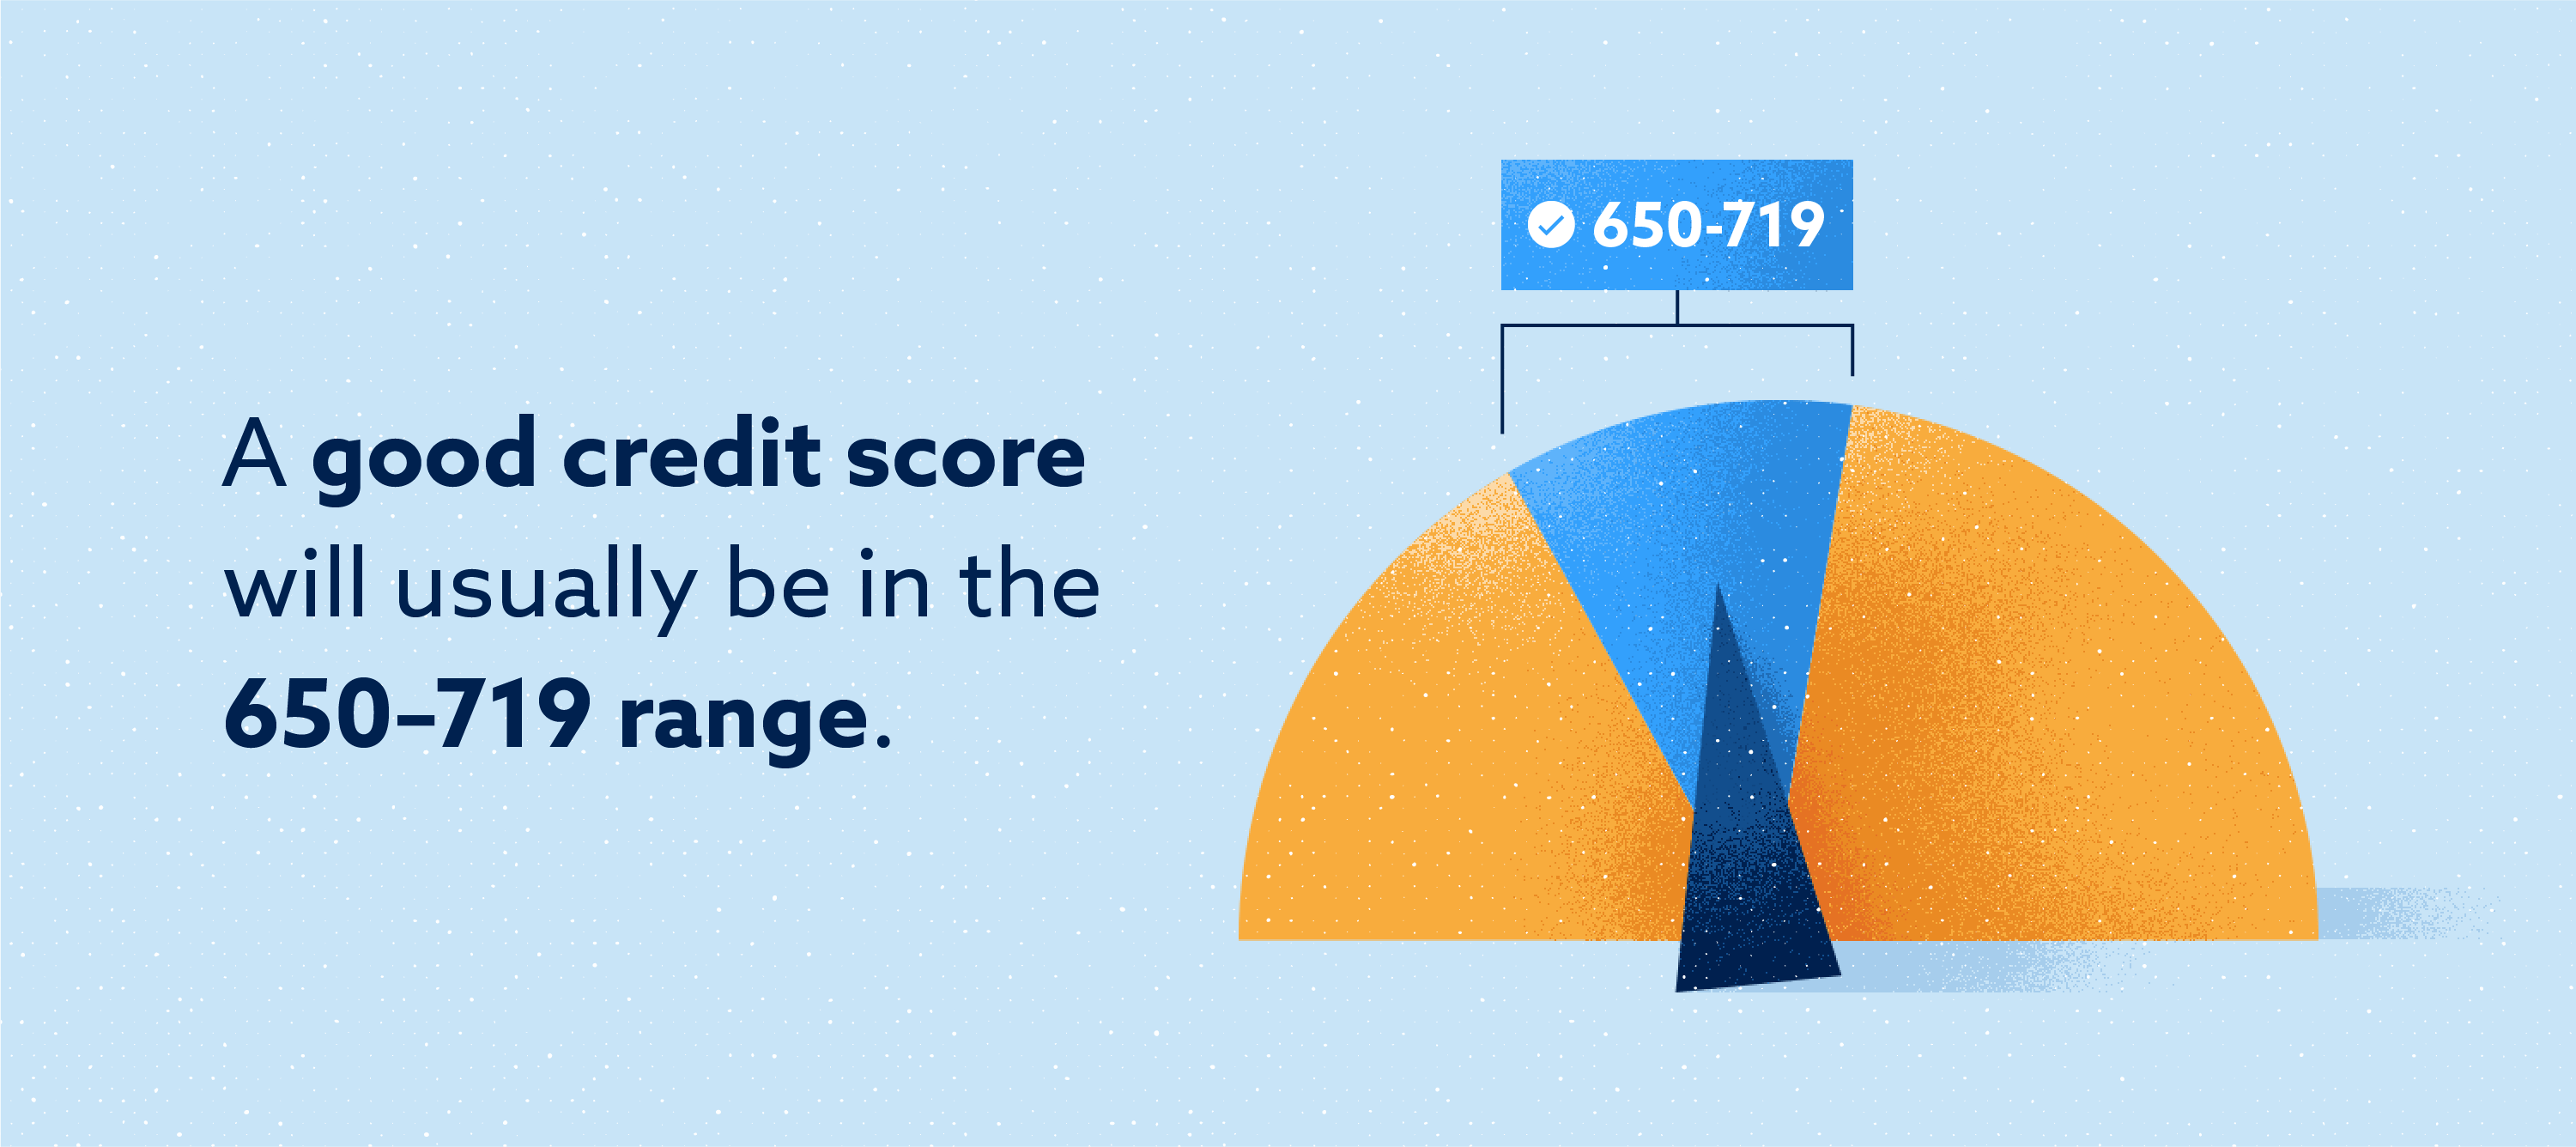 Good credit score Image